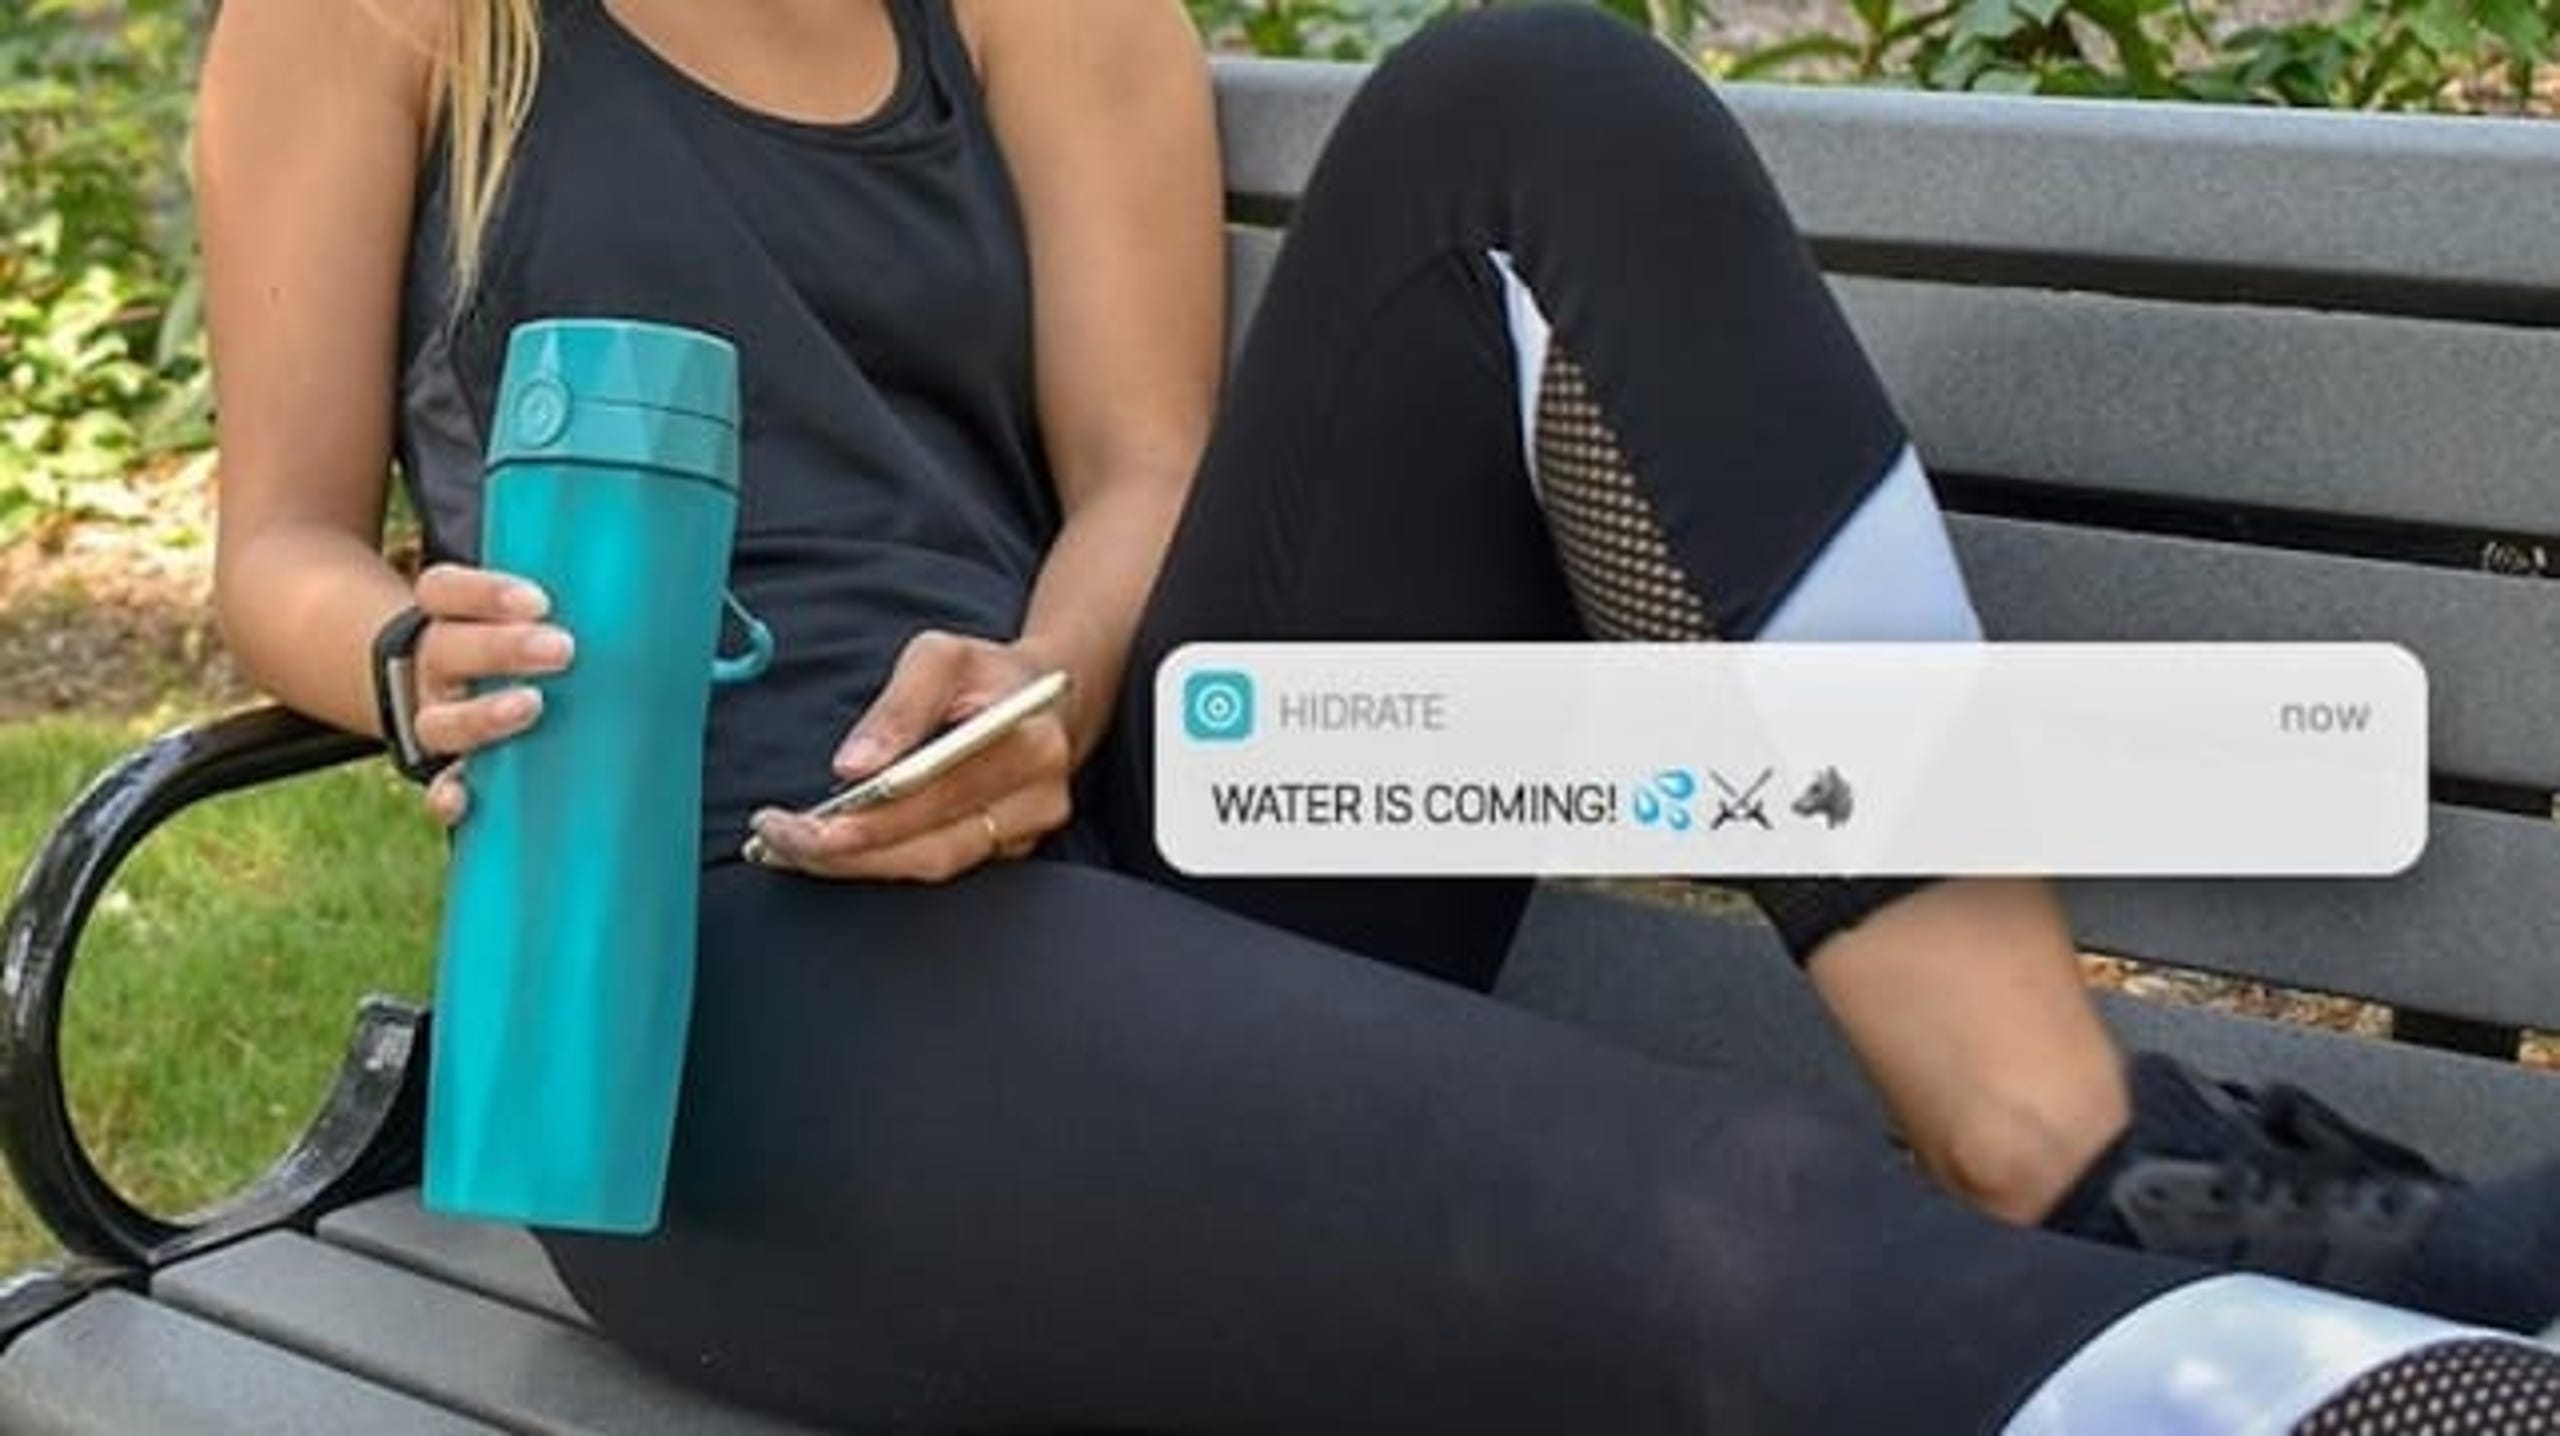 "If you&rsquo;re not very good at remembering to stay hydrated, the Hidrate smart water bottle could help you get on track. Its app and a glowing light on the bottle remind you to take a sip when you haven&rsquo;t in a while! (<a href=""https://www.amazon.com/dp/B06XRL8RS5/ref=as_li_ss_tl?th=1&amp;linkCode=ll1&amp;tag=usatgallery-20&amp;linkId=4ad8b0a2dc878cc984f6712fde772911&amp;language=en_US"">$59.99 on Amazon</a>)"